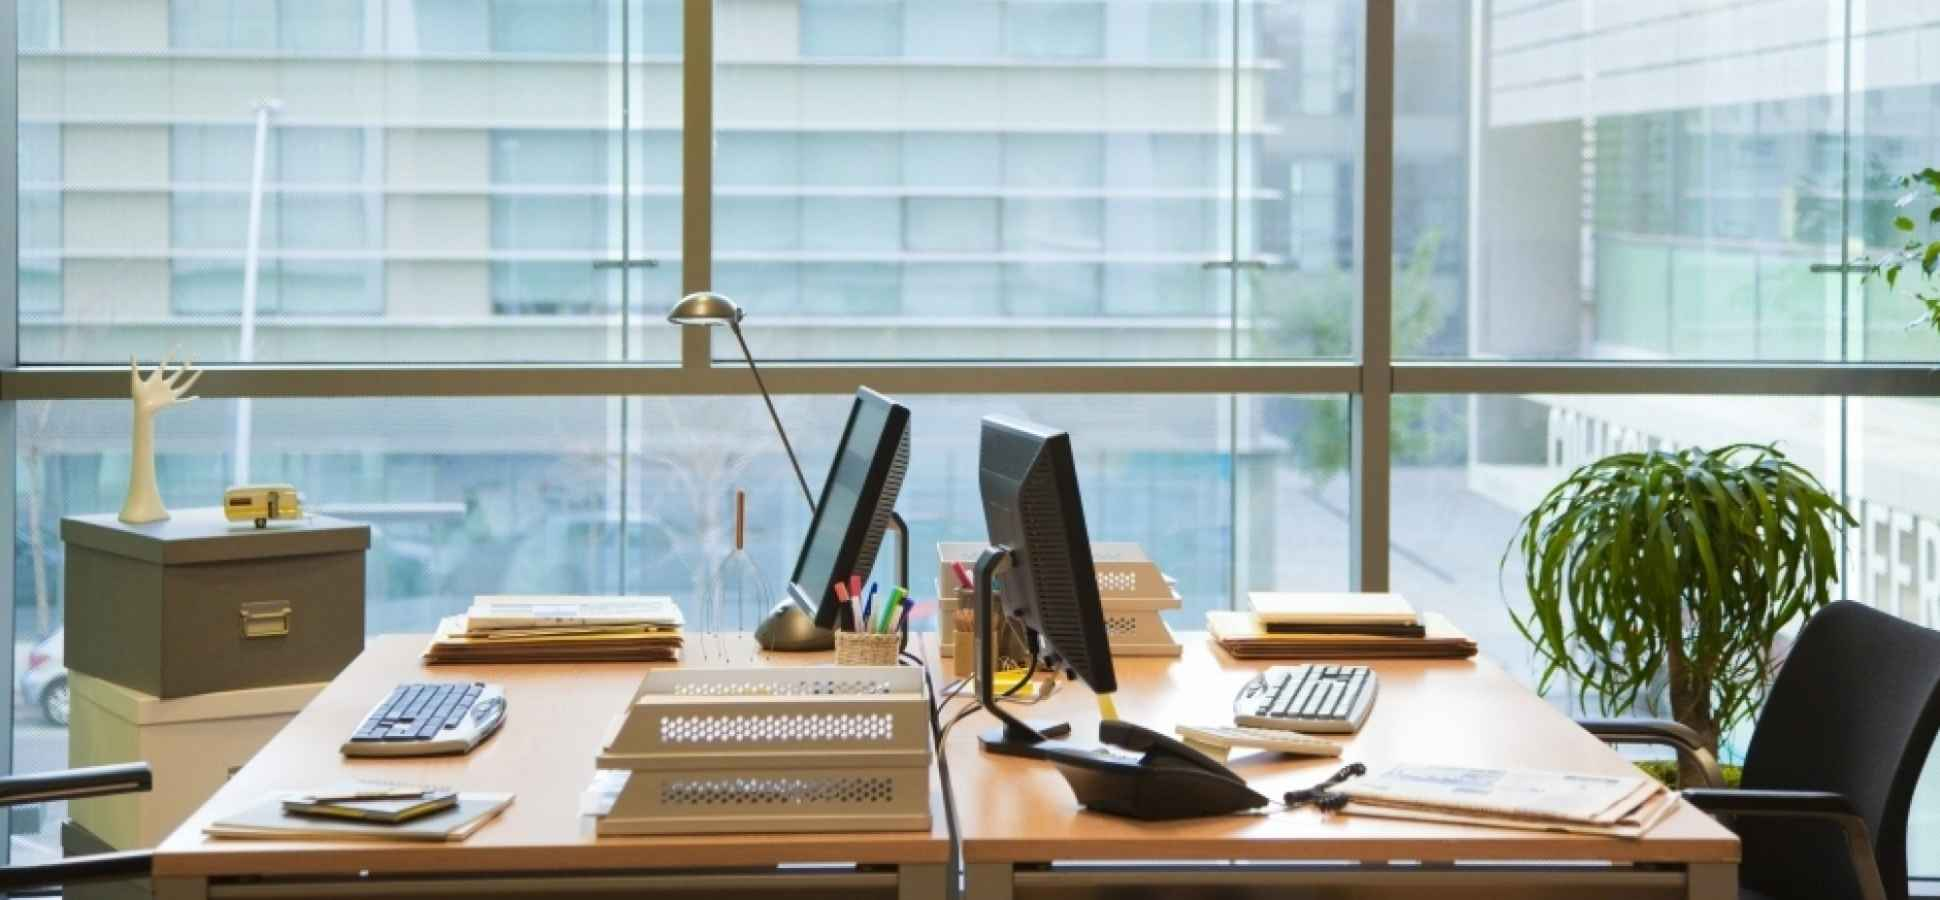 7 Simple Office Changes That Can Increase Mood and Productivity ...